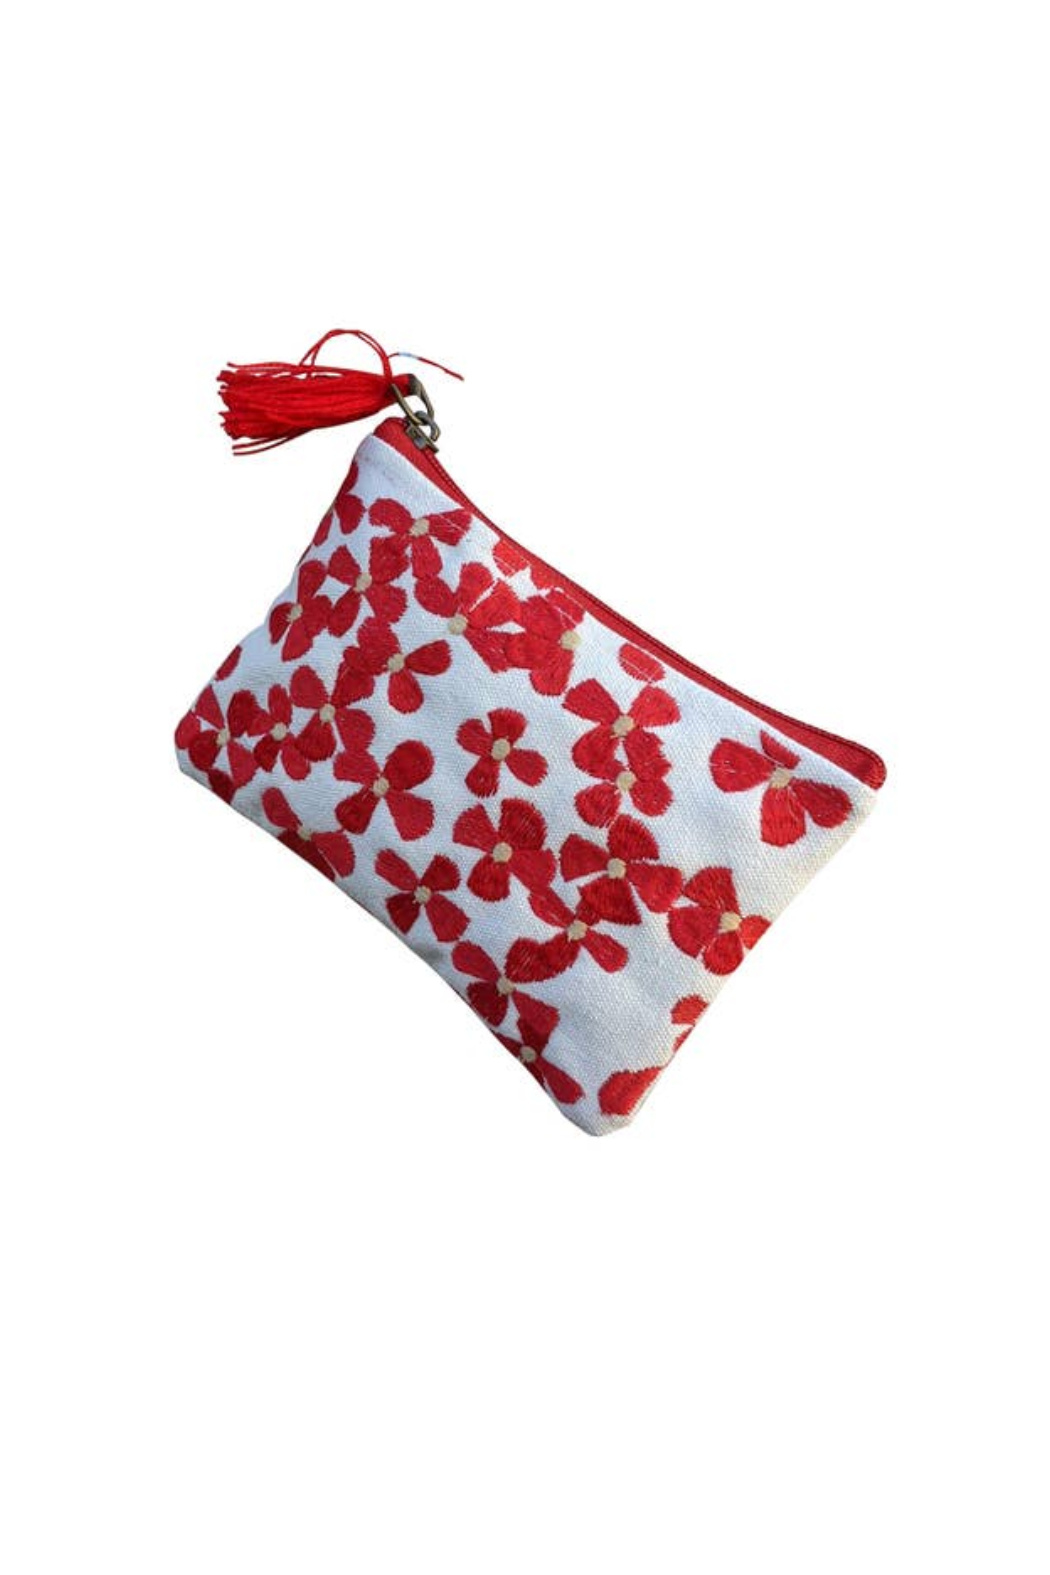 Chloe & Lex Red Embroidered Floral Coin Purse - Main Image